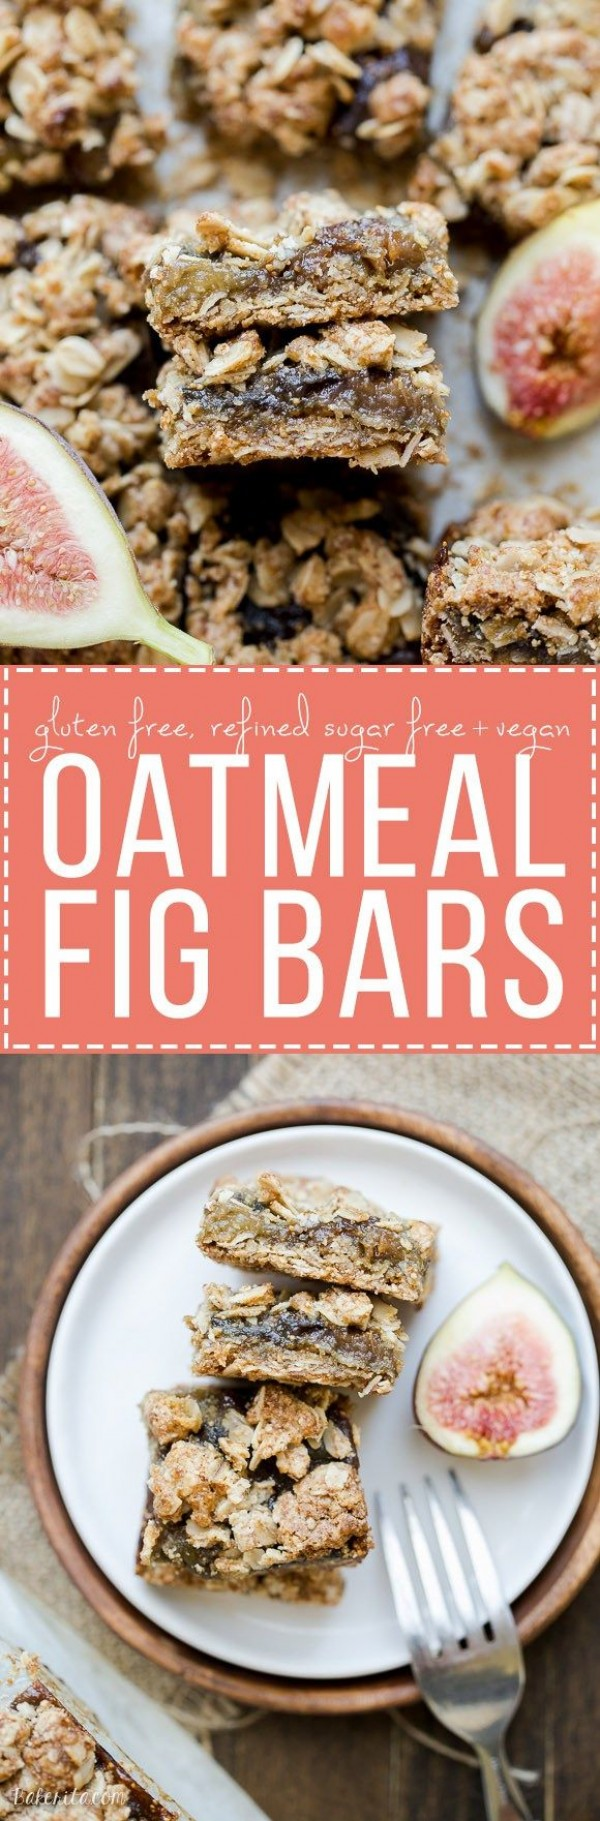 Get the recipe for Oatmeal Fig Bars @recipes_to_go